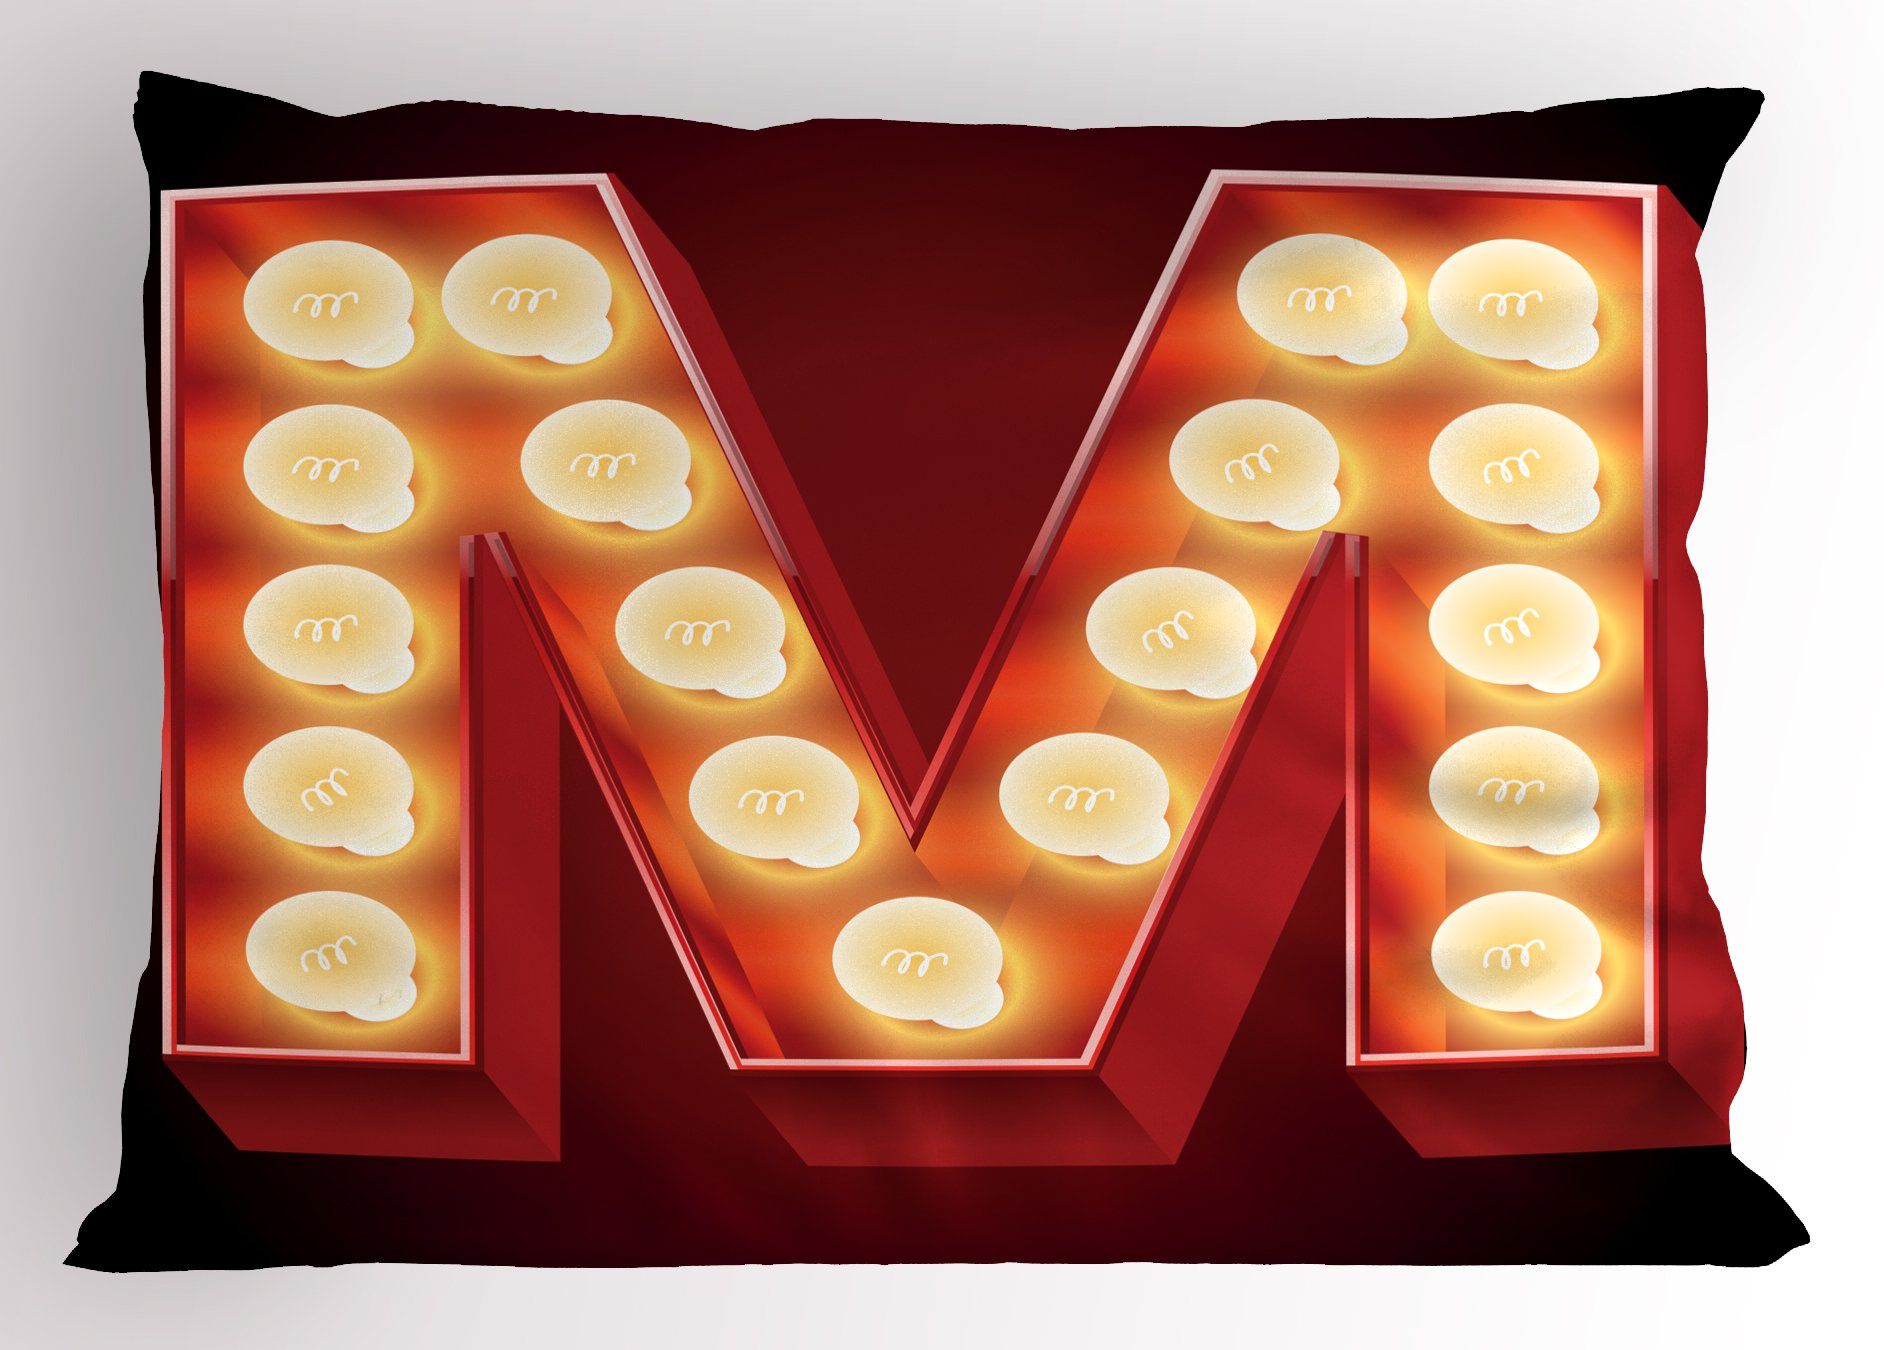 Ambesonne Letter M Pillow Sham, Vintage Alphabet Collection of Old Movie Theaters Casinos Retro Type, Decorative Standard King Size Printed Pillowcase, 36 X 20 inches, Vermilion Yellow Black